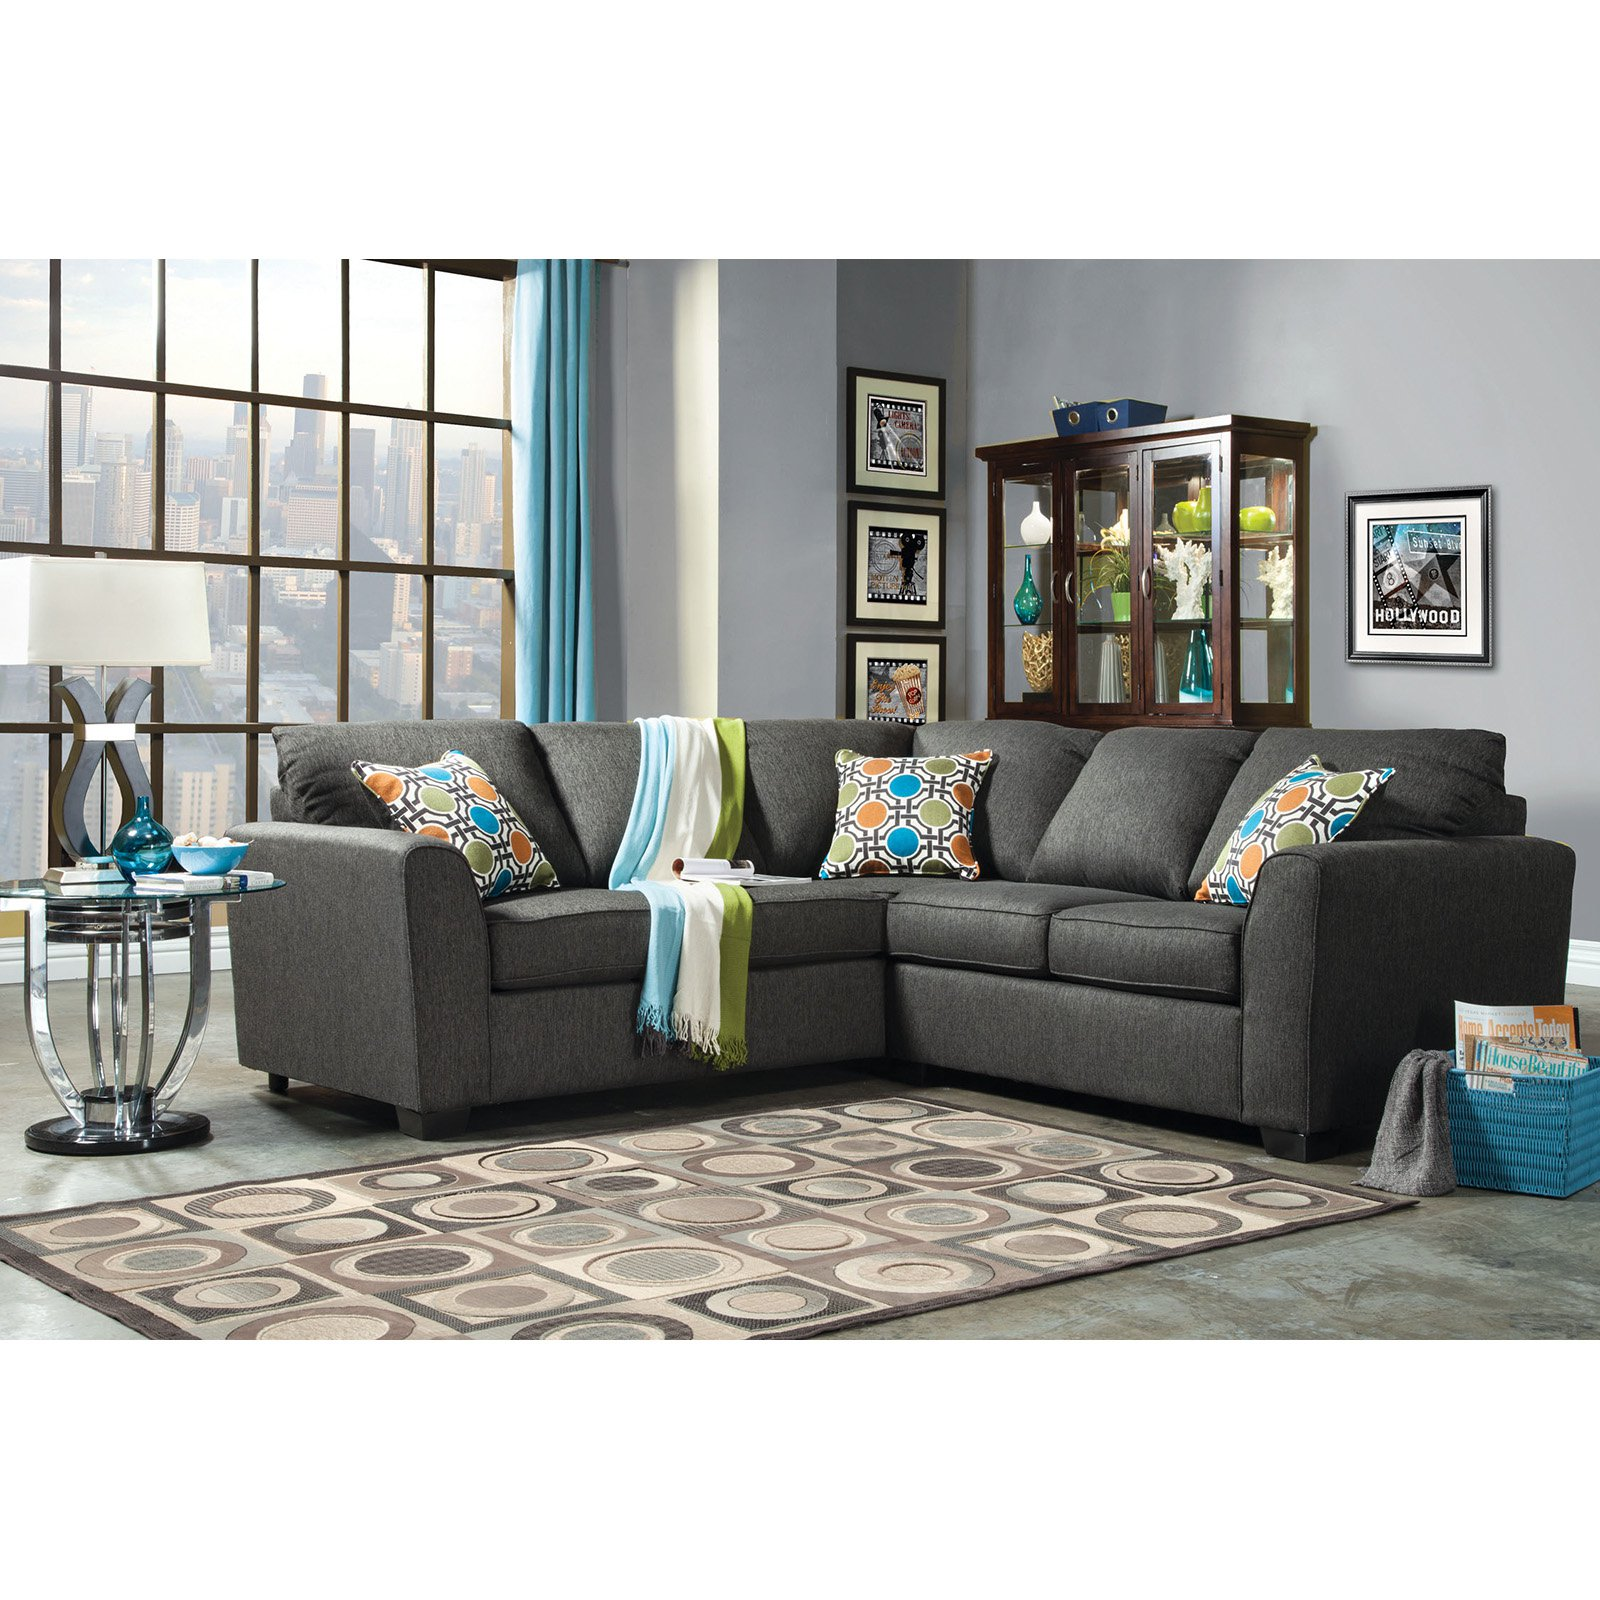 Furniture of America Parker 2 Piece Fabric Sectional Sofa Gray